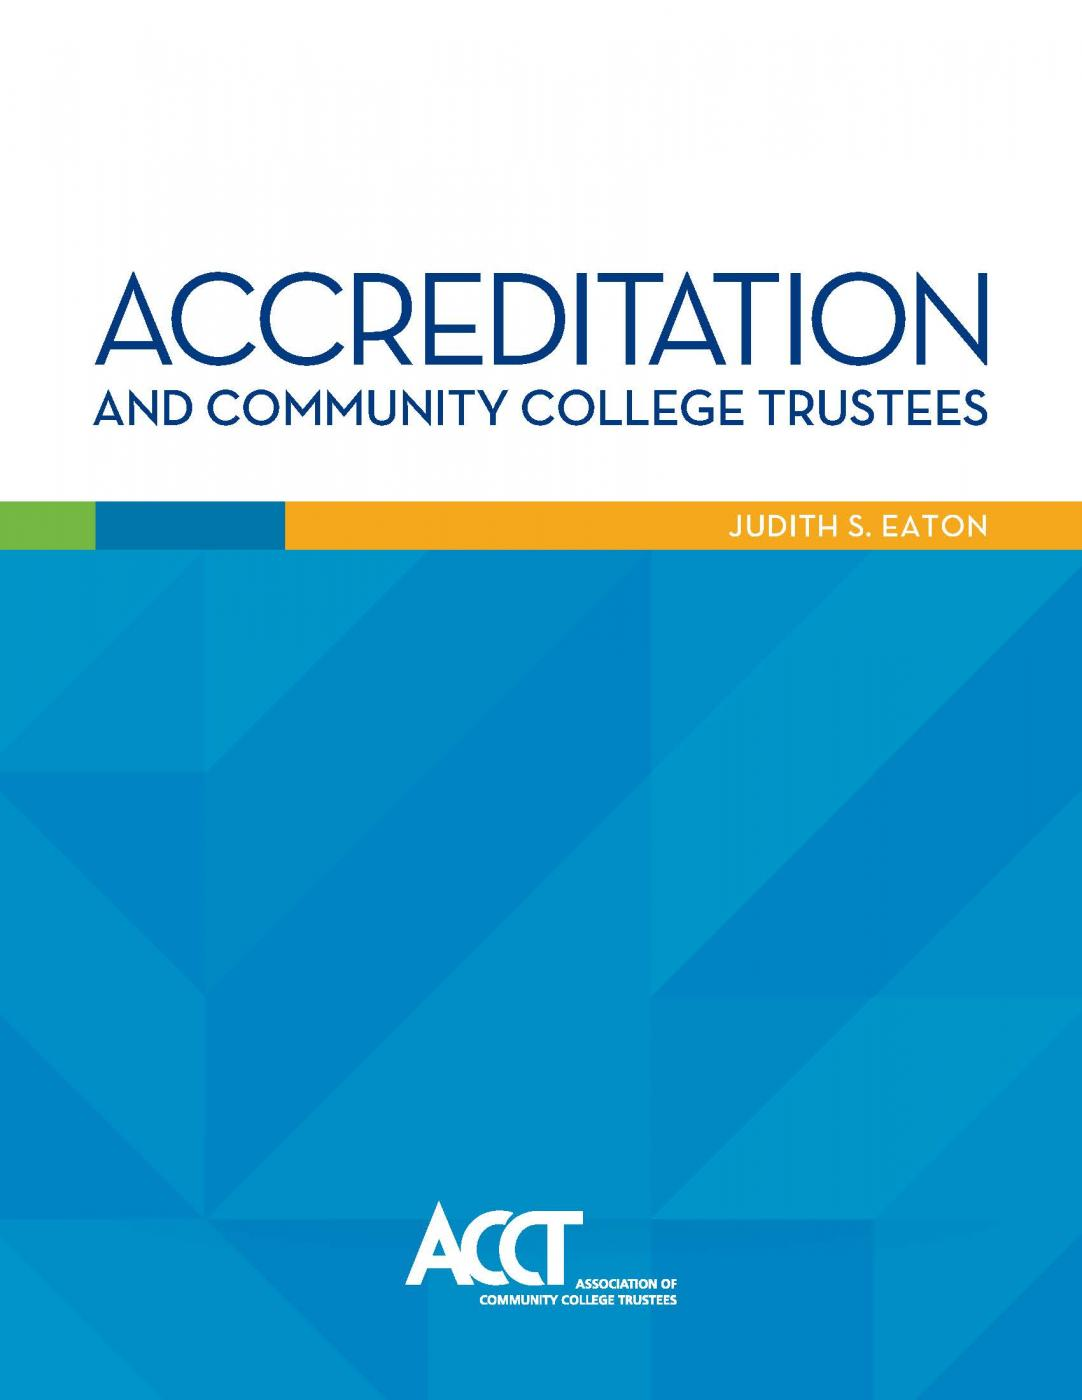 Accreditation report